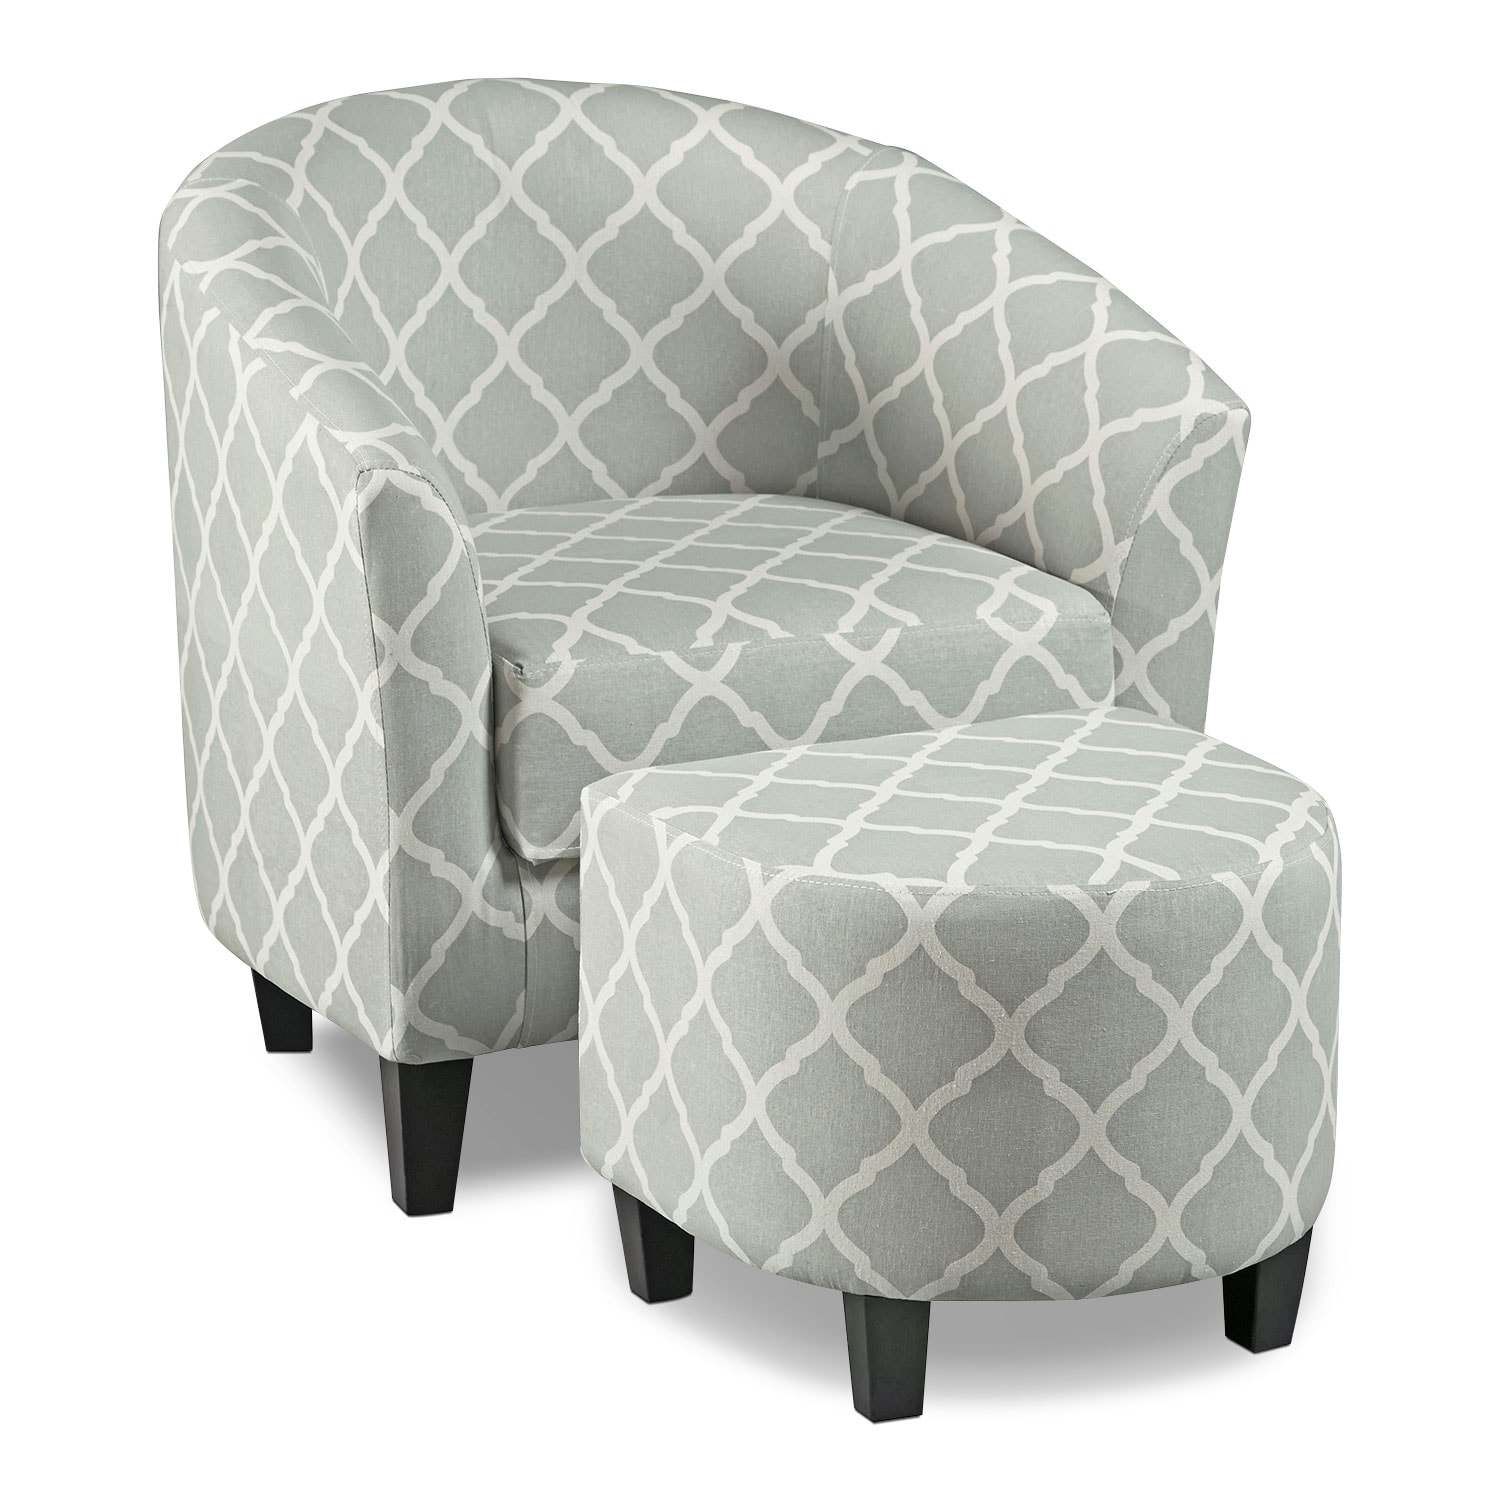 Living Room Furniture - Sperrie Accent Chair and Ottoman - Gray  sc 1 st  American Signature Furniture & Sperrie Accent Chair and Ottoman - Gray | American Signature Furniture